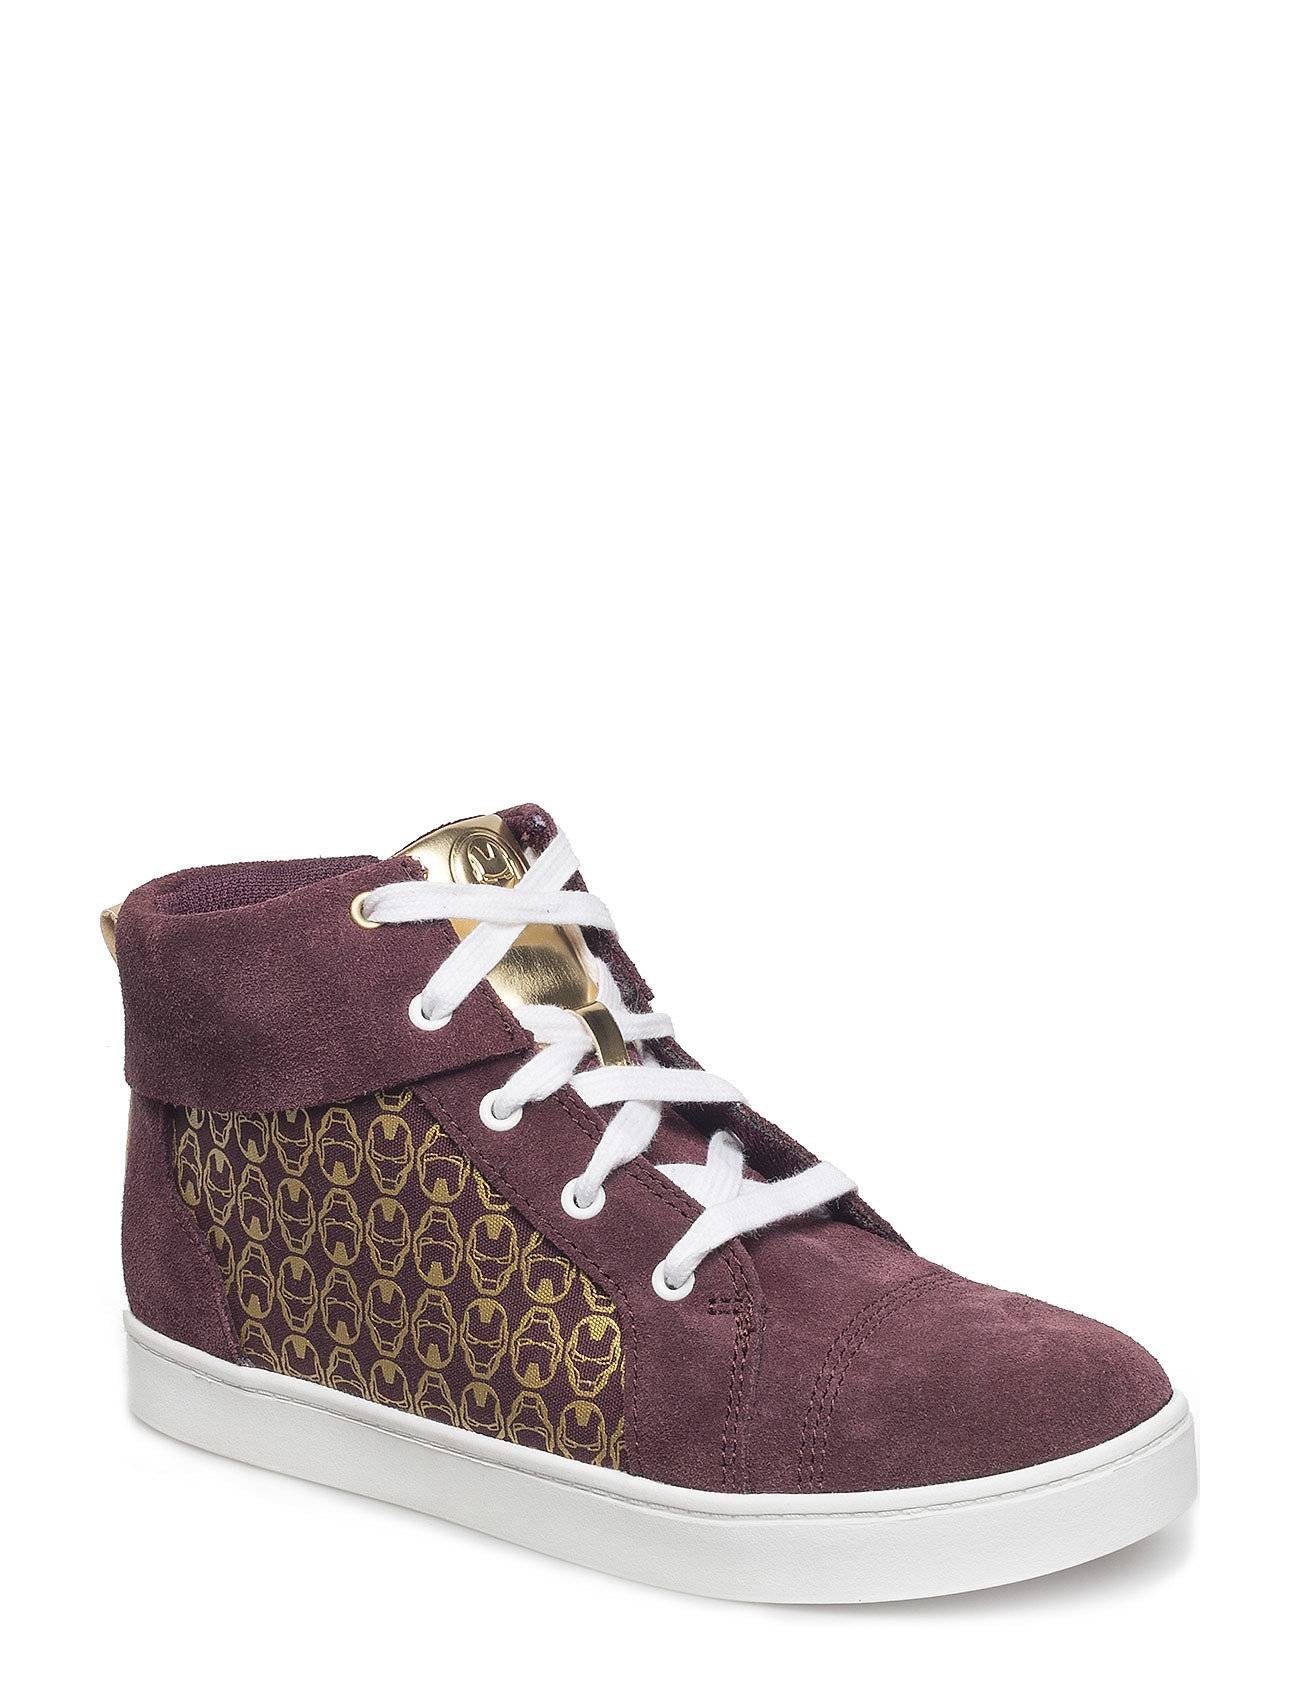 Clarks City Hero Hi